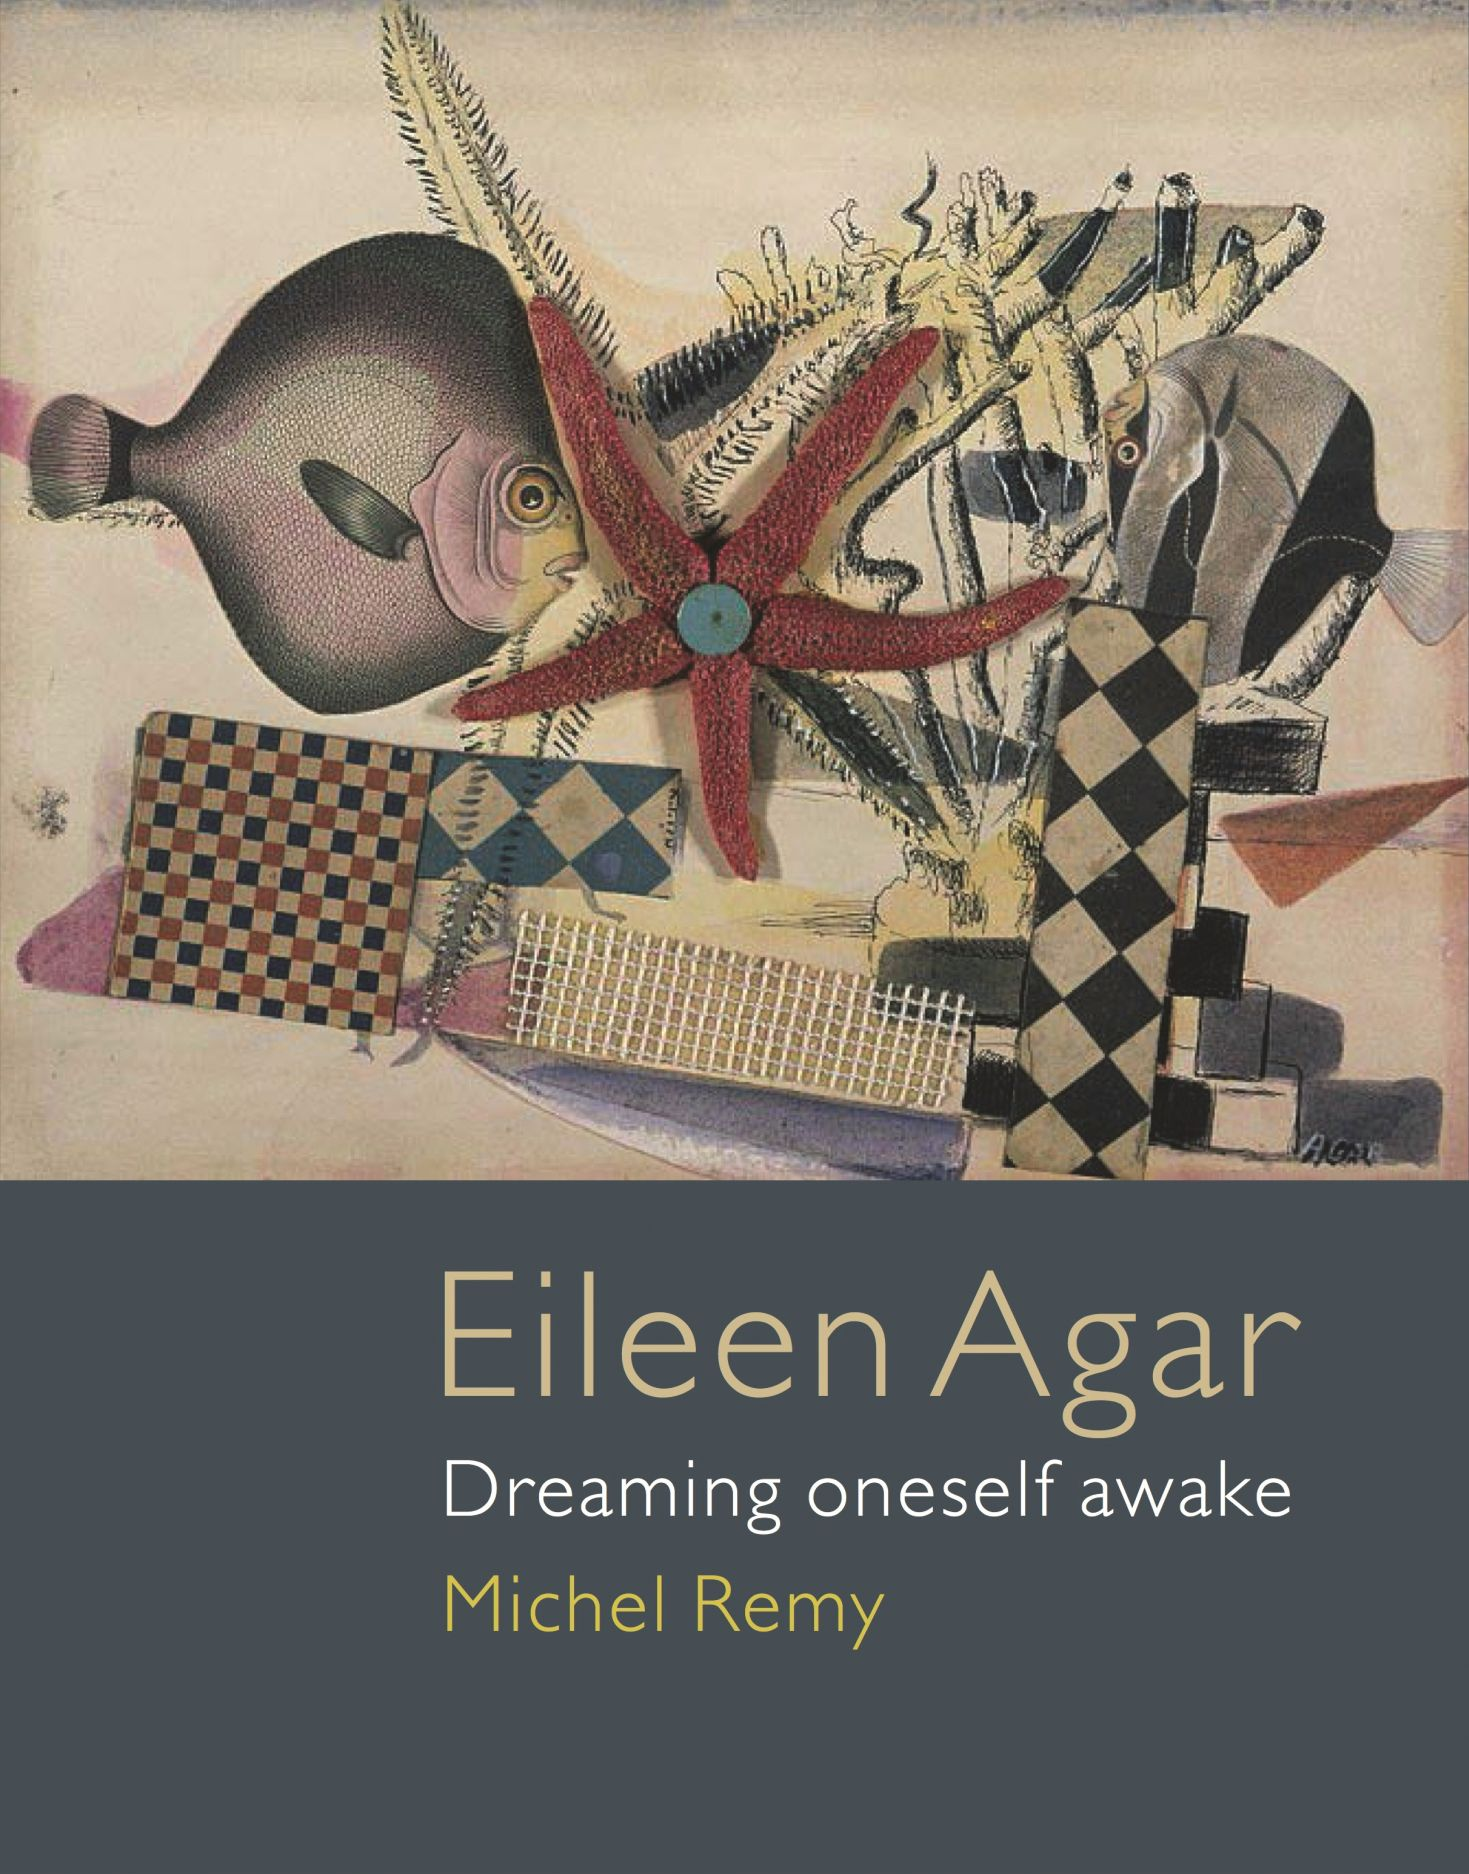 Eileen Agar: Dreaming Oneself Awake